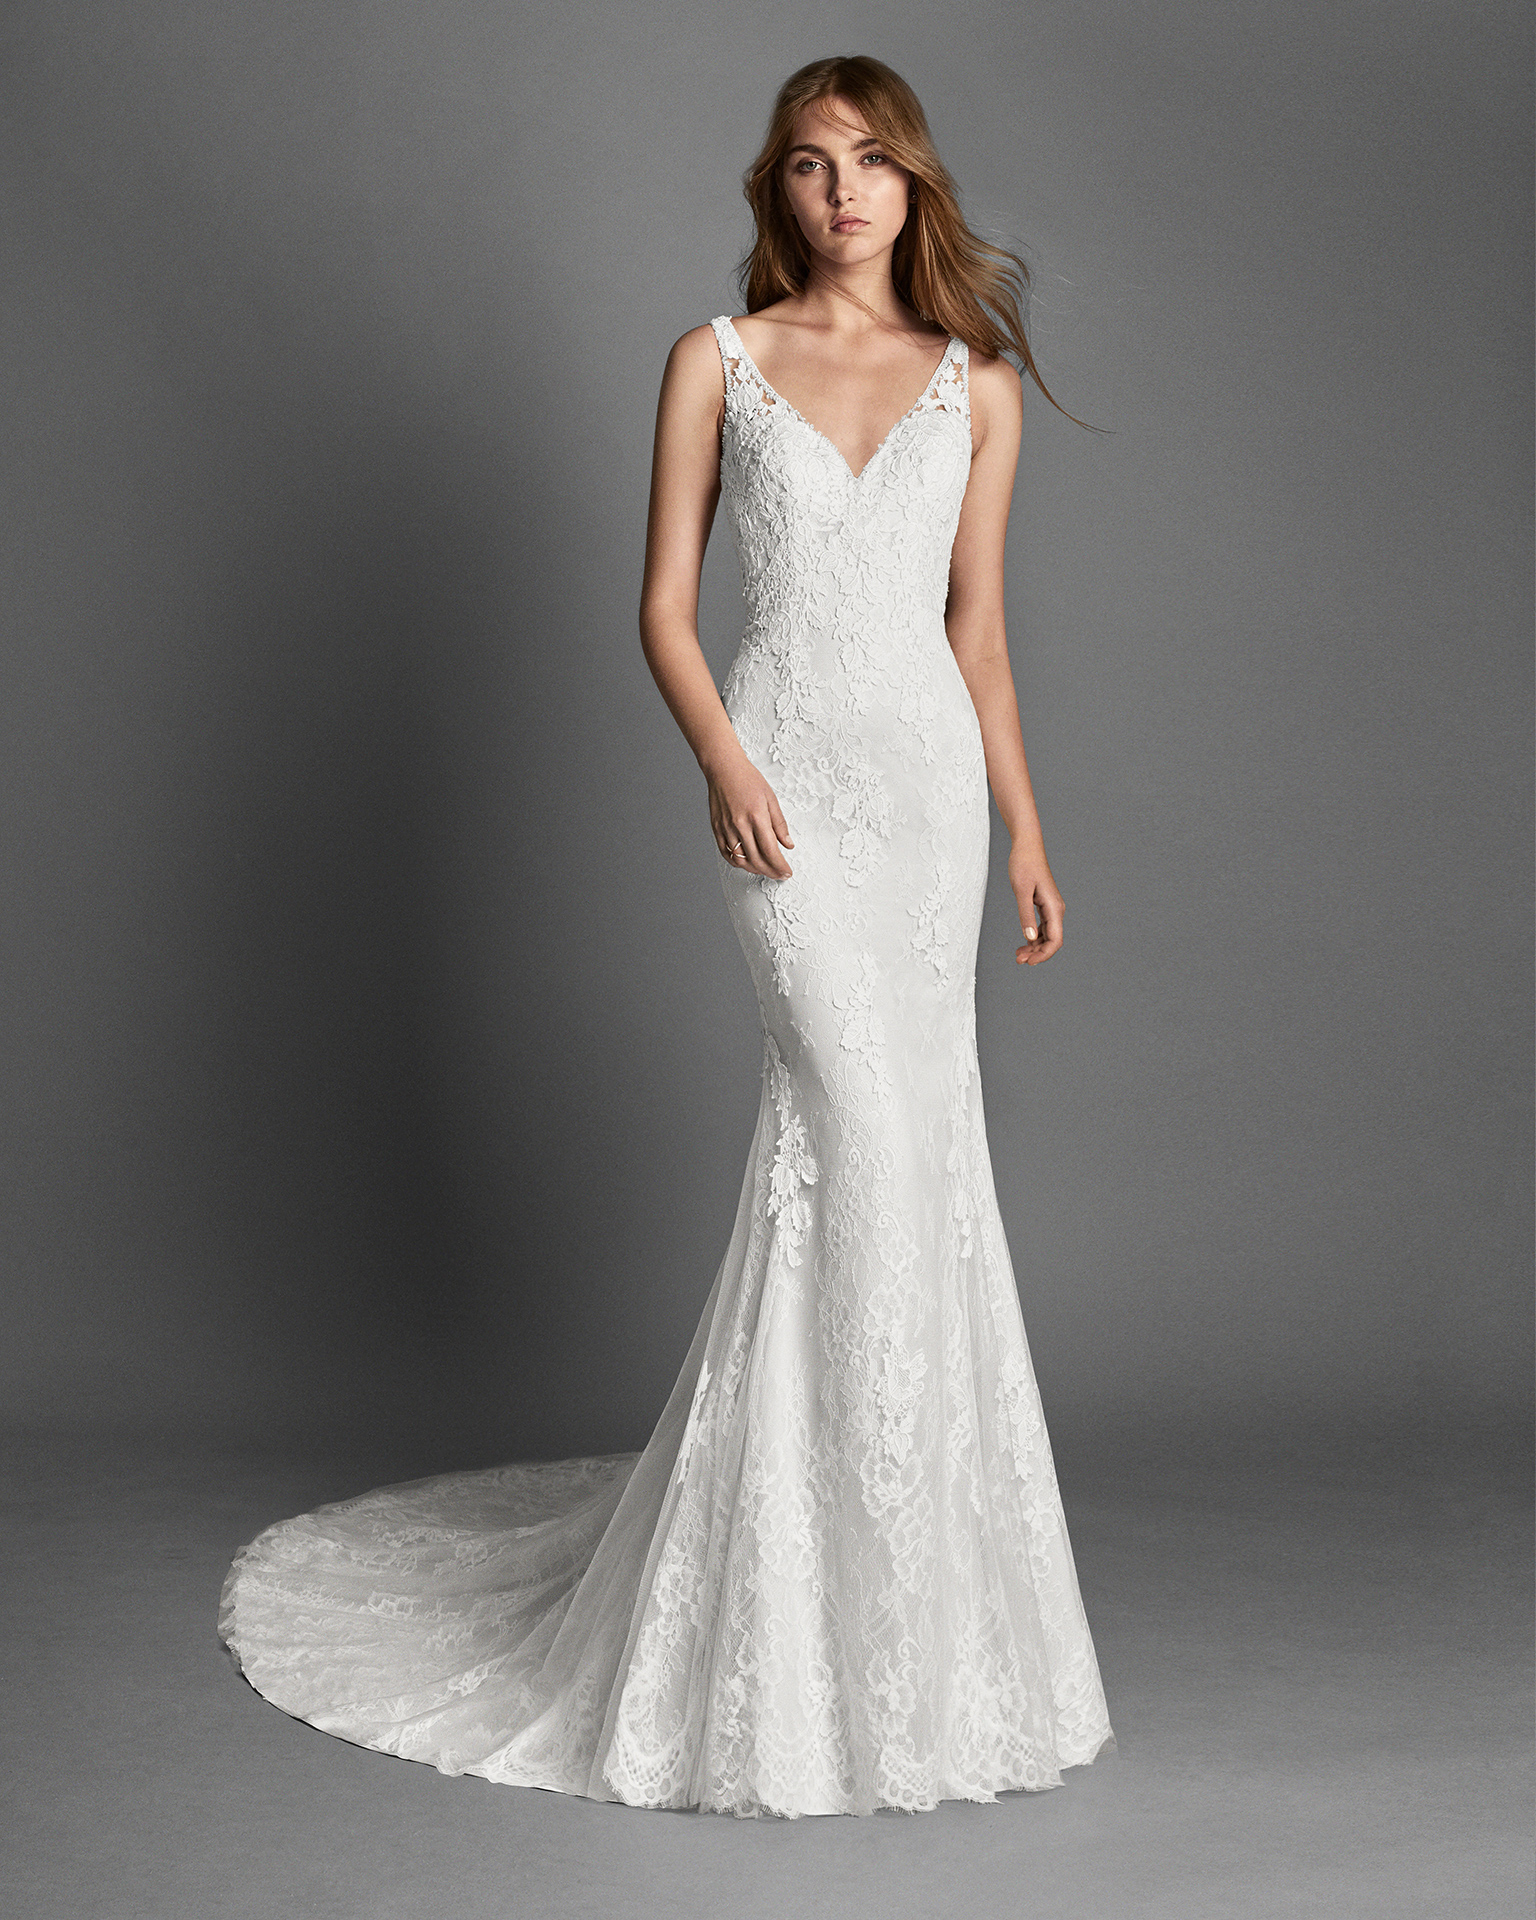 Mermaid-style beaded lace and guipure lace wedding dress with low back and lace appliqués.